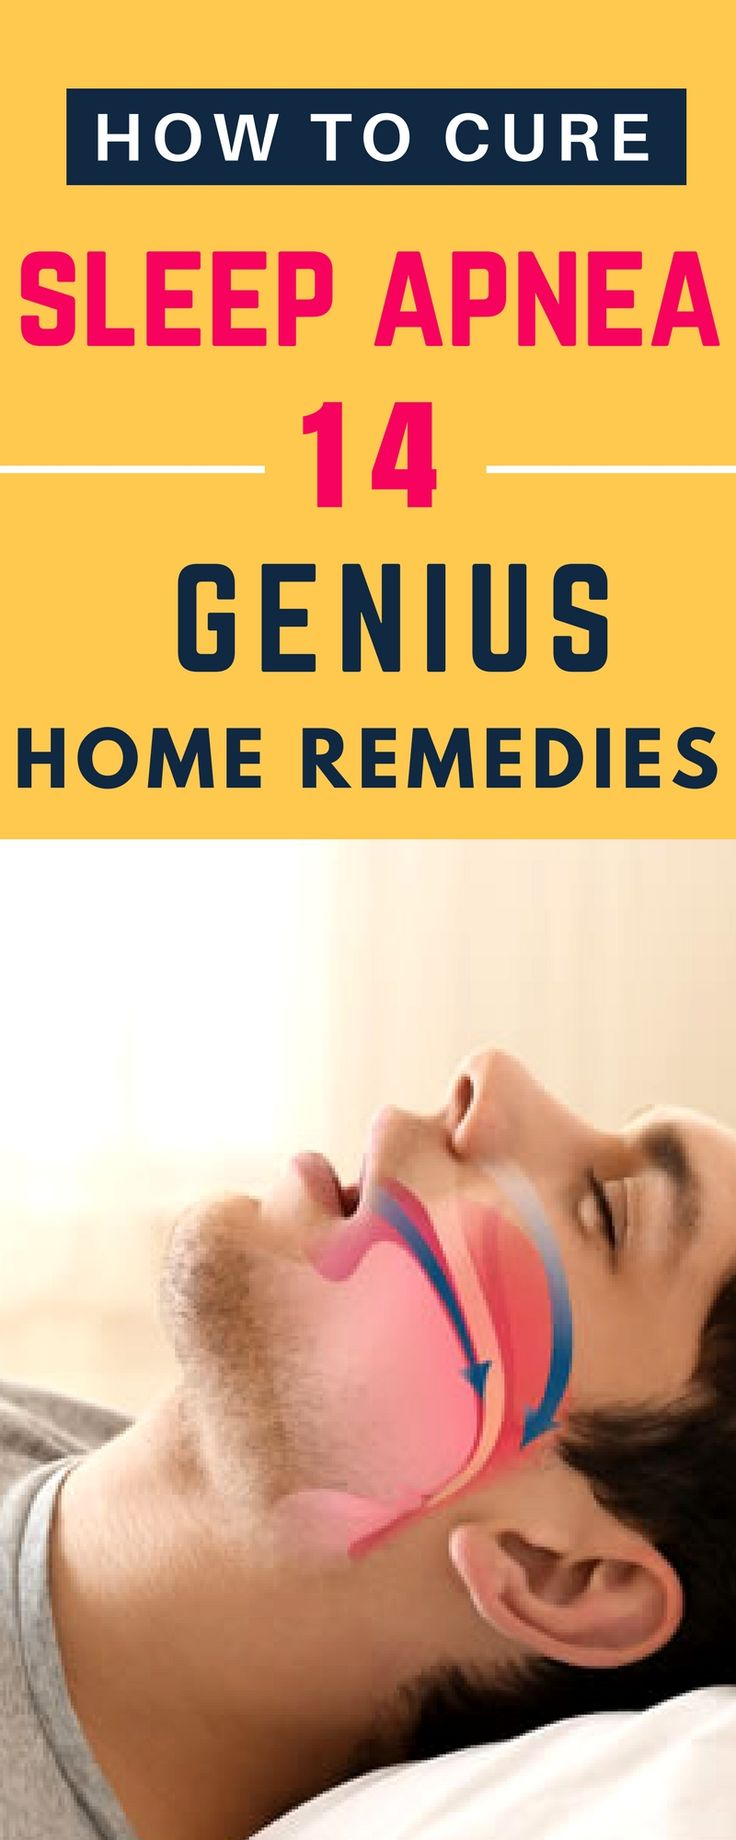 These 14 Remedies From Your Kitchen Will Cure Sleep Apnea. Get rid of the CPAP today. #sleepapnea #sleepdisorders #insomnia